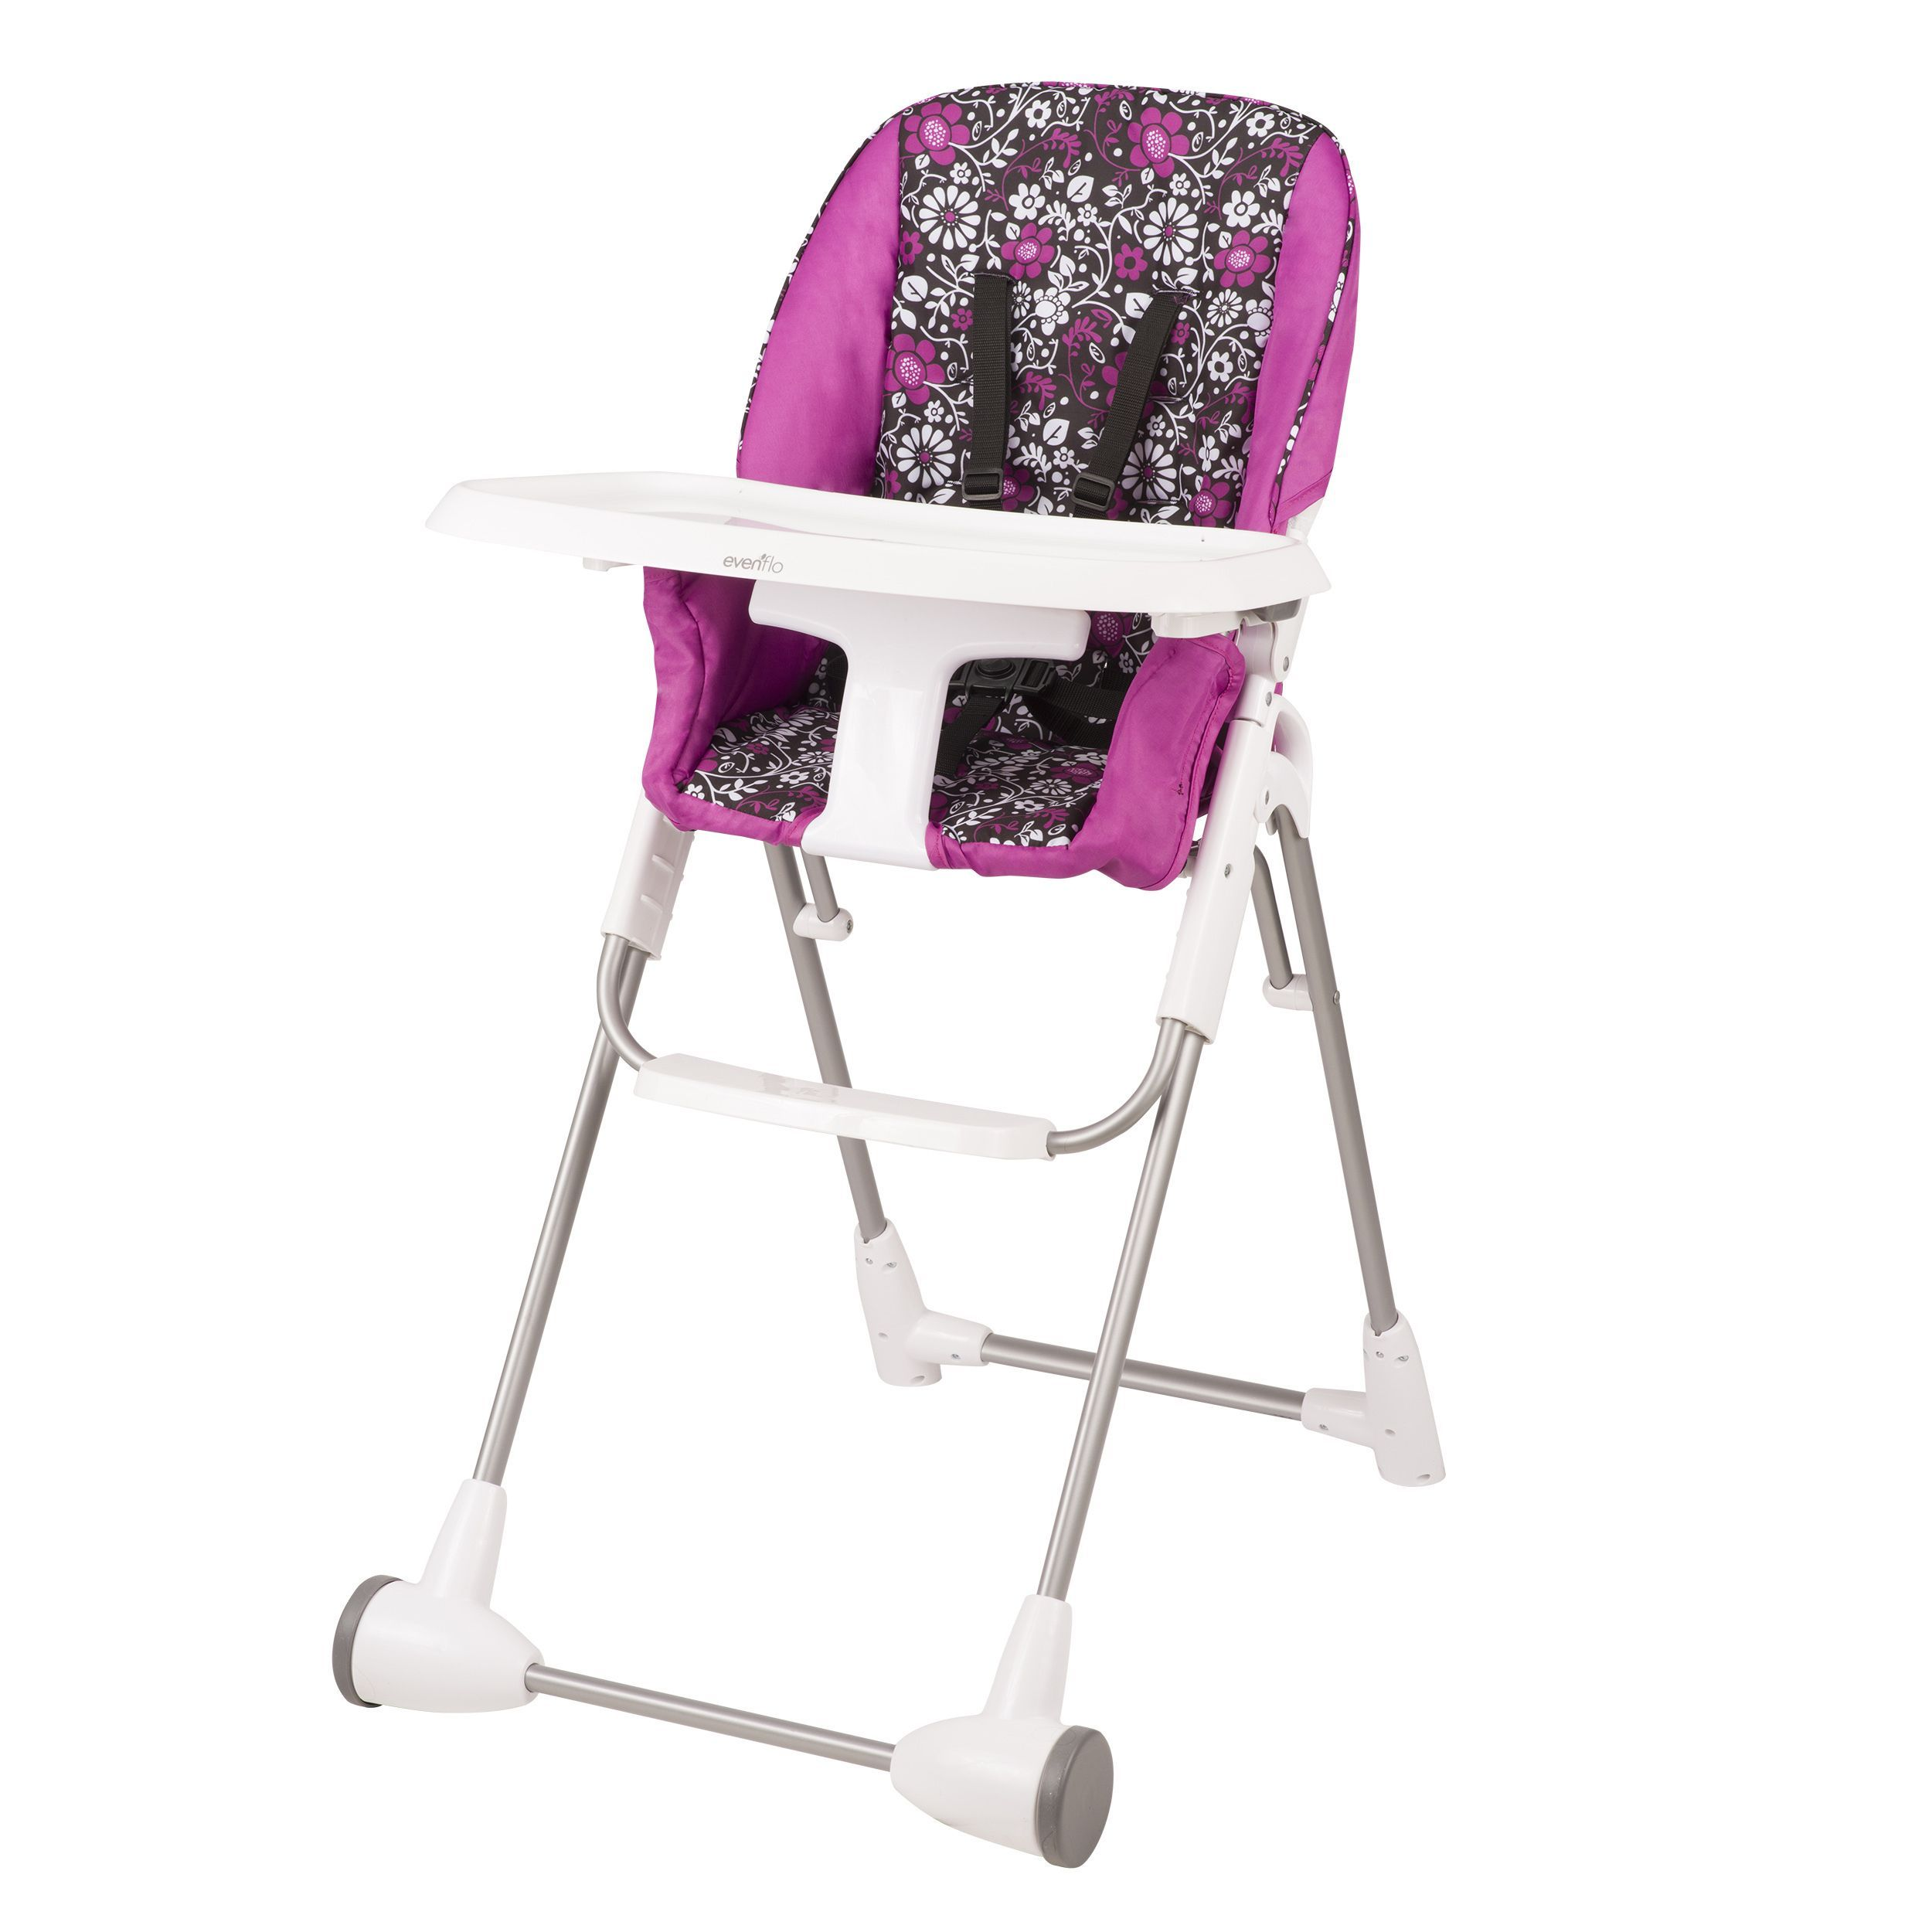 Evenflo Symmetry Flat Fold High Chair In Daphne Daphne Pink Seat Pads Chair Cool Baby Stuff